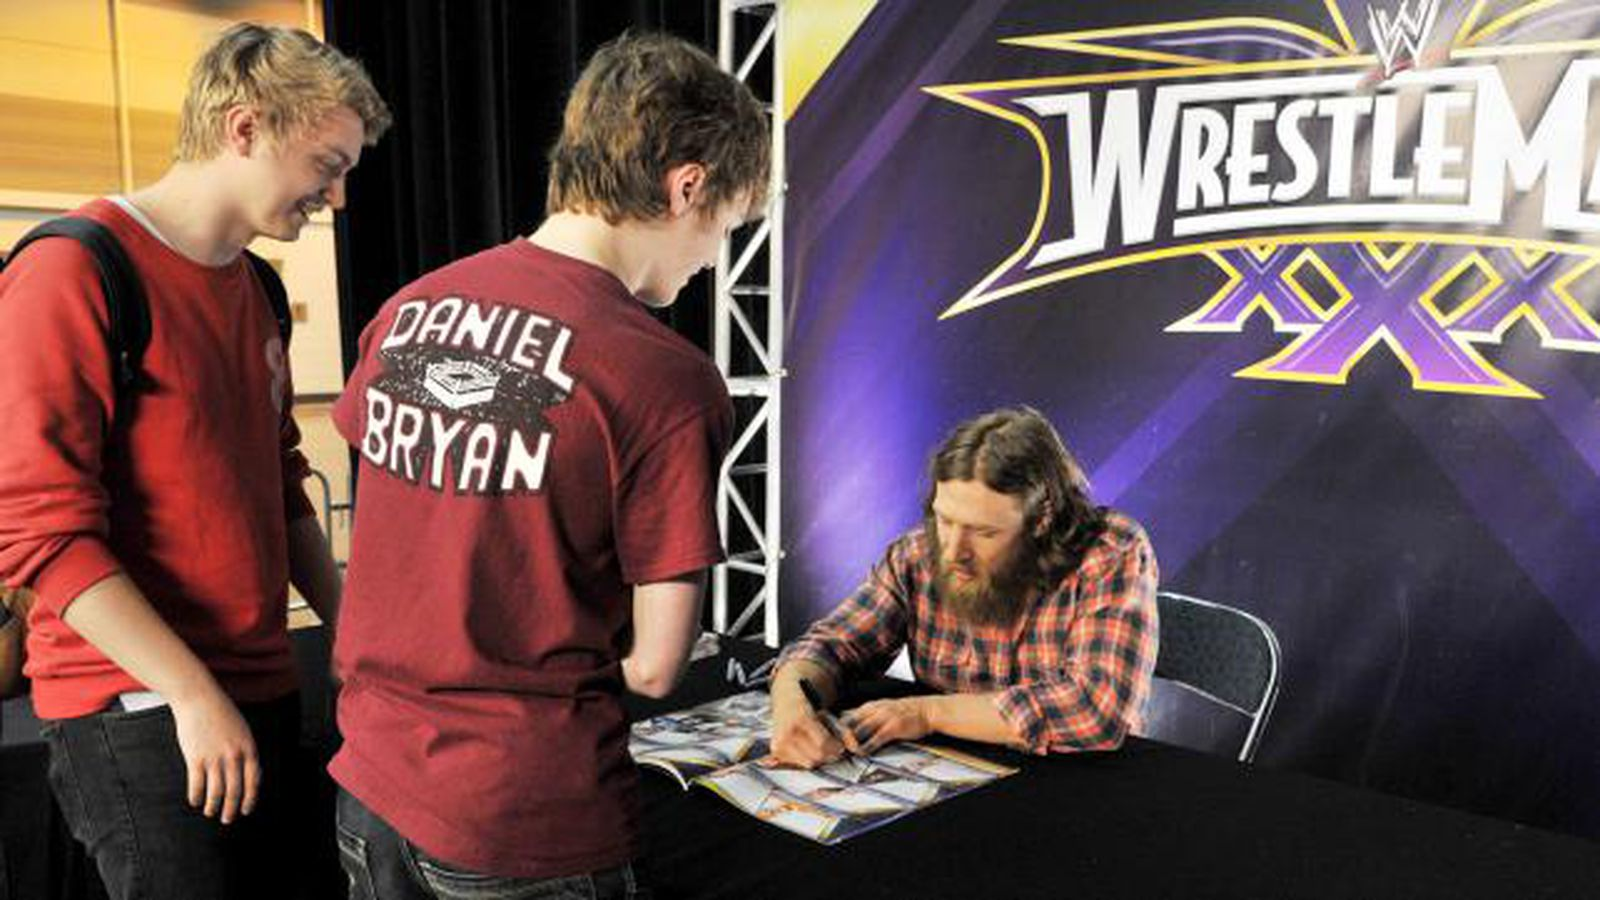 Wwe Television Deal Shows That For Networks And